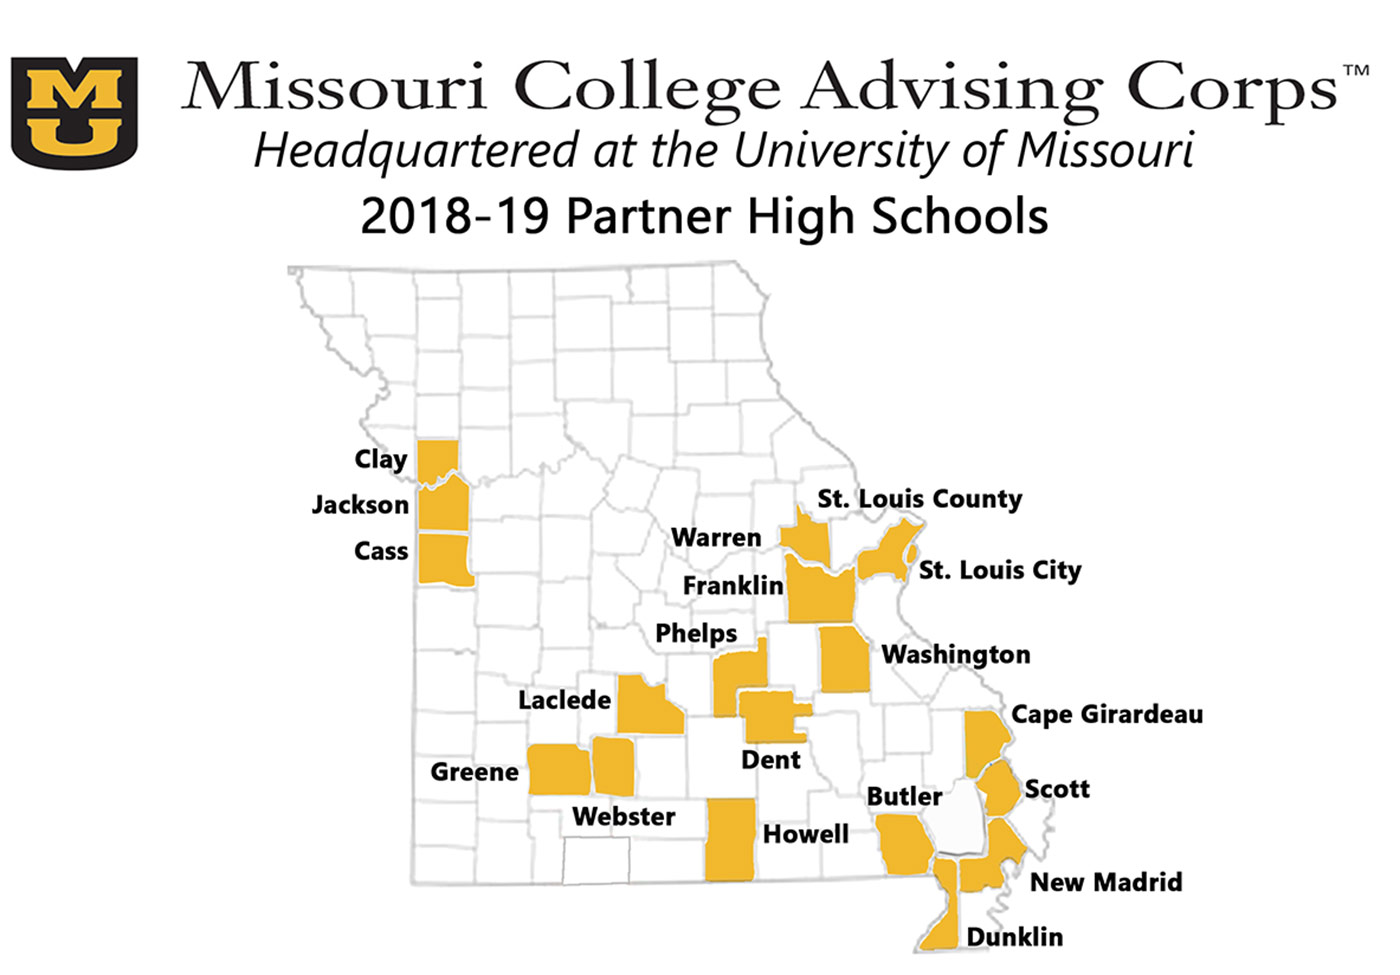 2018-19 MCAC Partner High Schools map